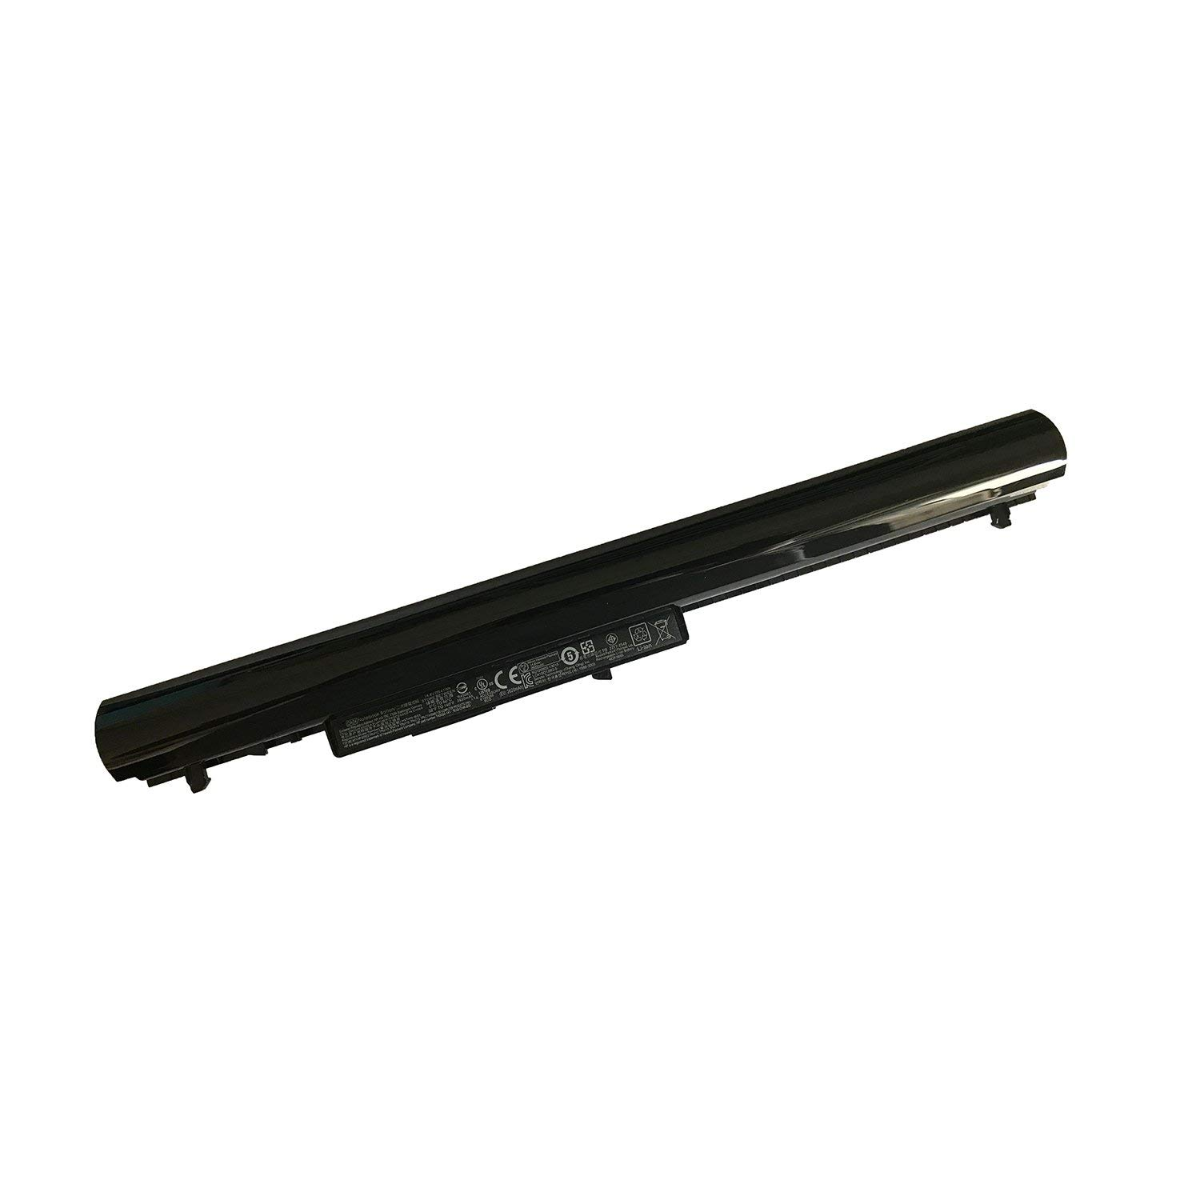 Μπαταρία Laptop - Battery for HP 15-G005NL 15-G005SW 15-G006AU 15-G006AX 15-G006ER 15-G006NE 15-G006NP 15-G006NV 15-G006SL 15-G007AX 15-G007DX OEM Υψηλής ποιότητας (Κωδ.1-BAT0002)